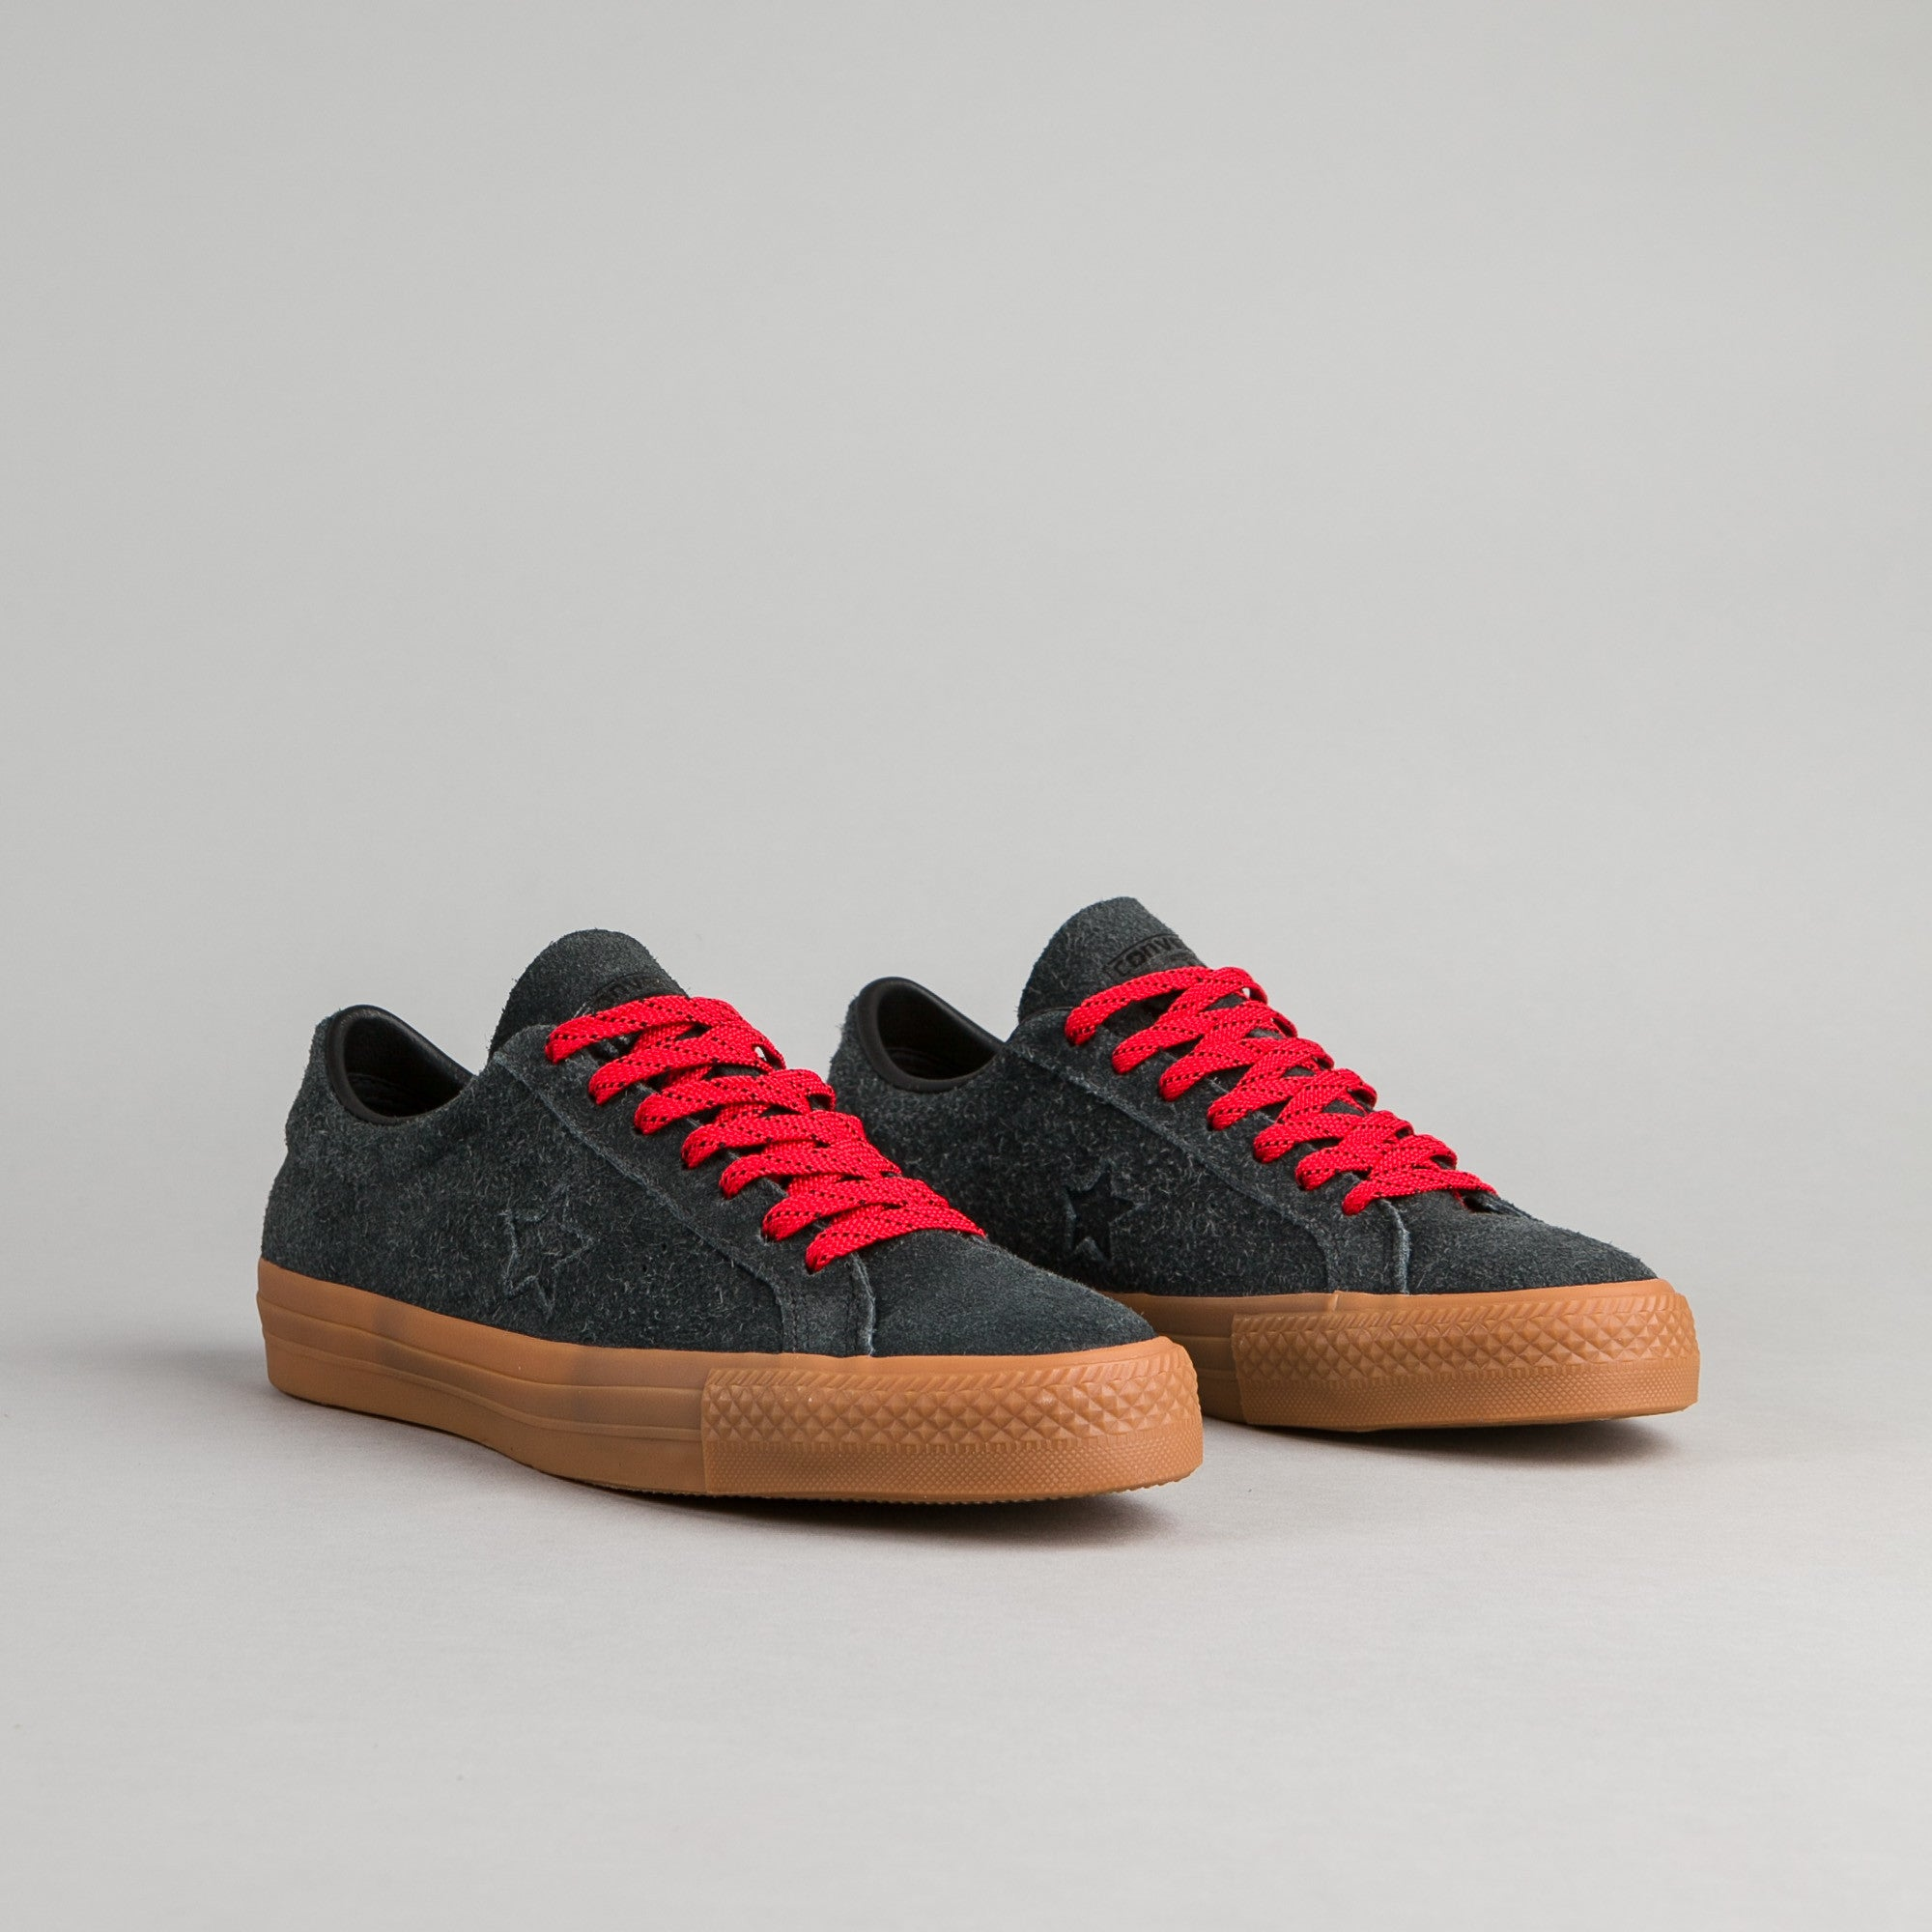 ... Converse One Star Pro Suede OX Shoes - Black   Casino   Gum ... e3e76a167